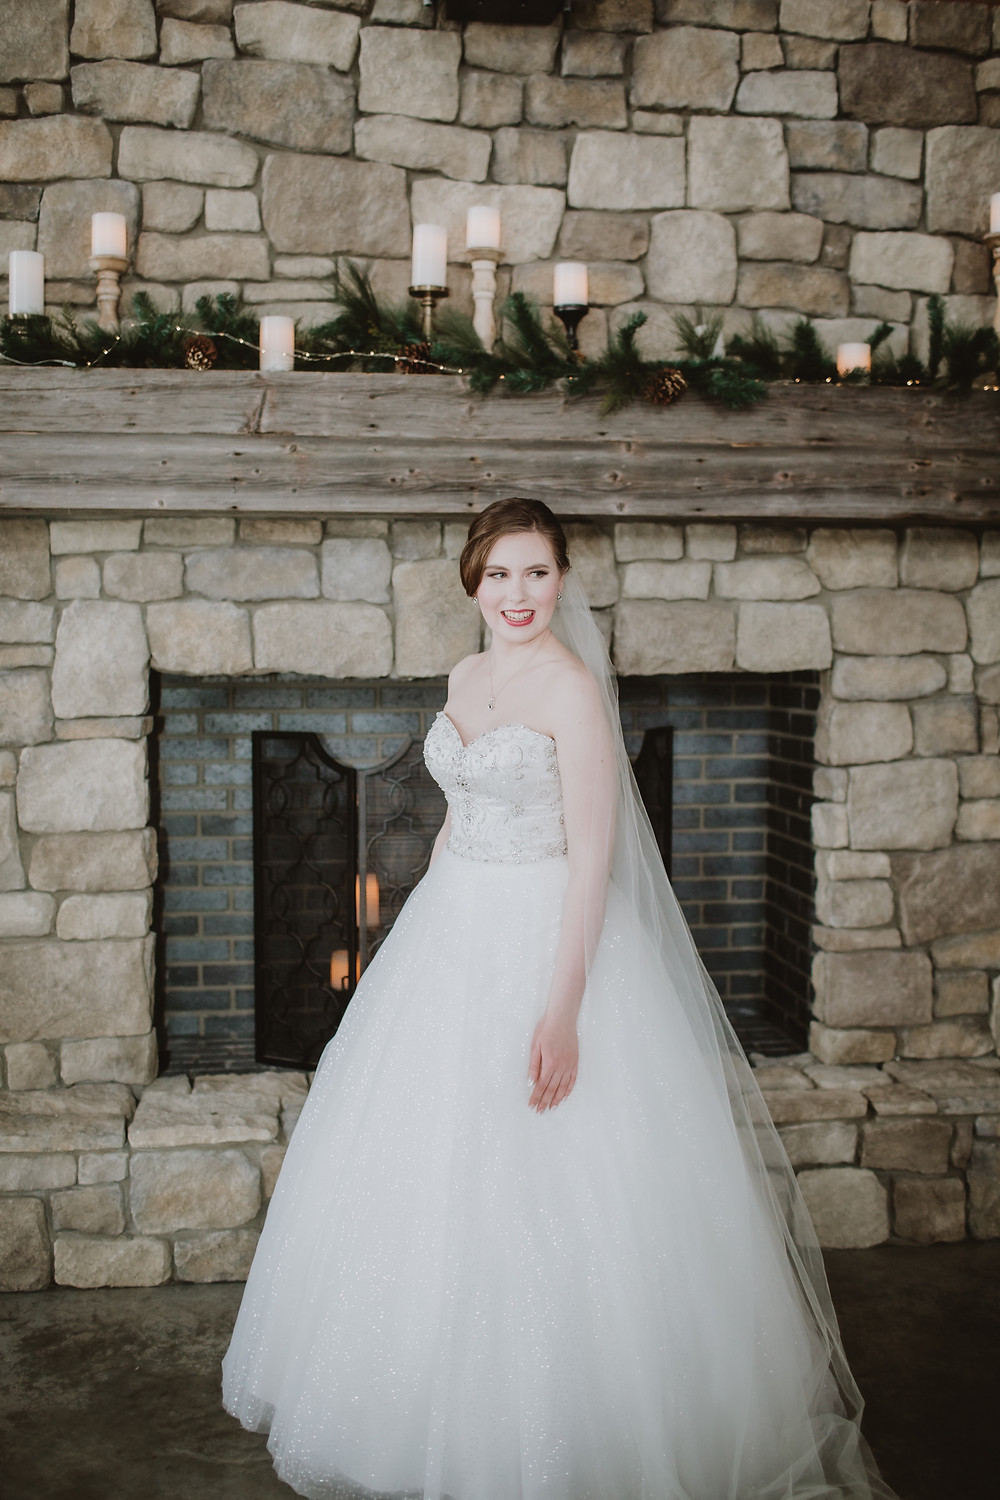 Canadian bride excited for her winter wedding in Manitoba.